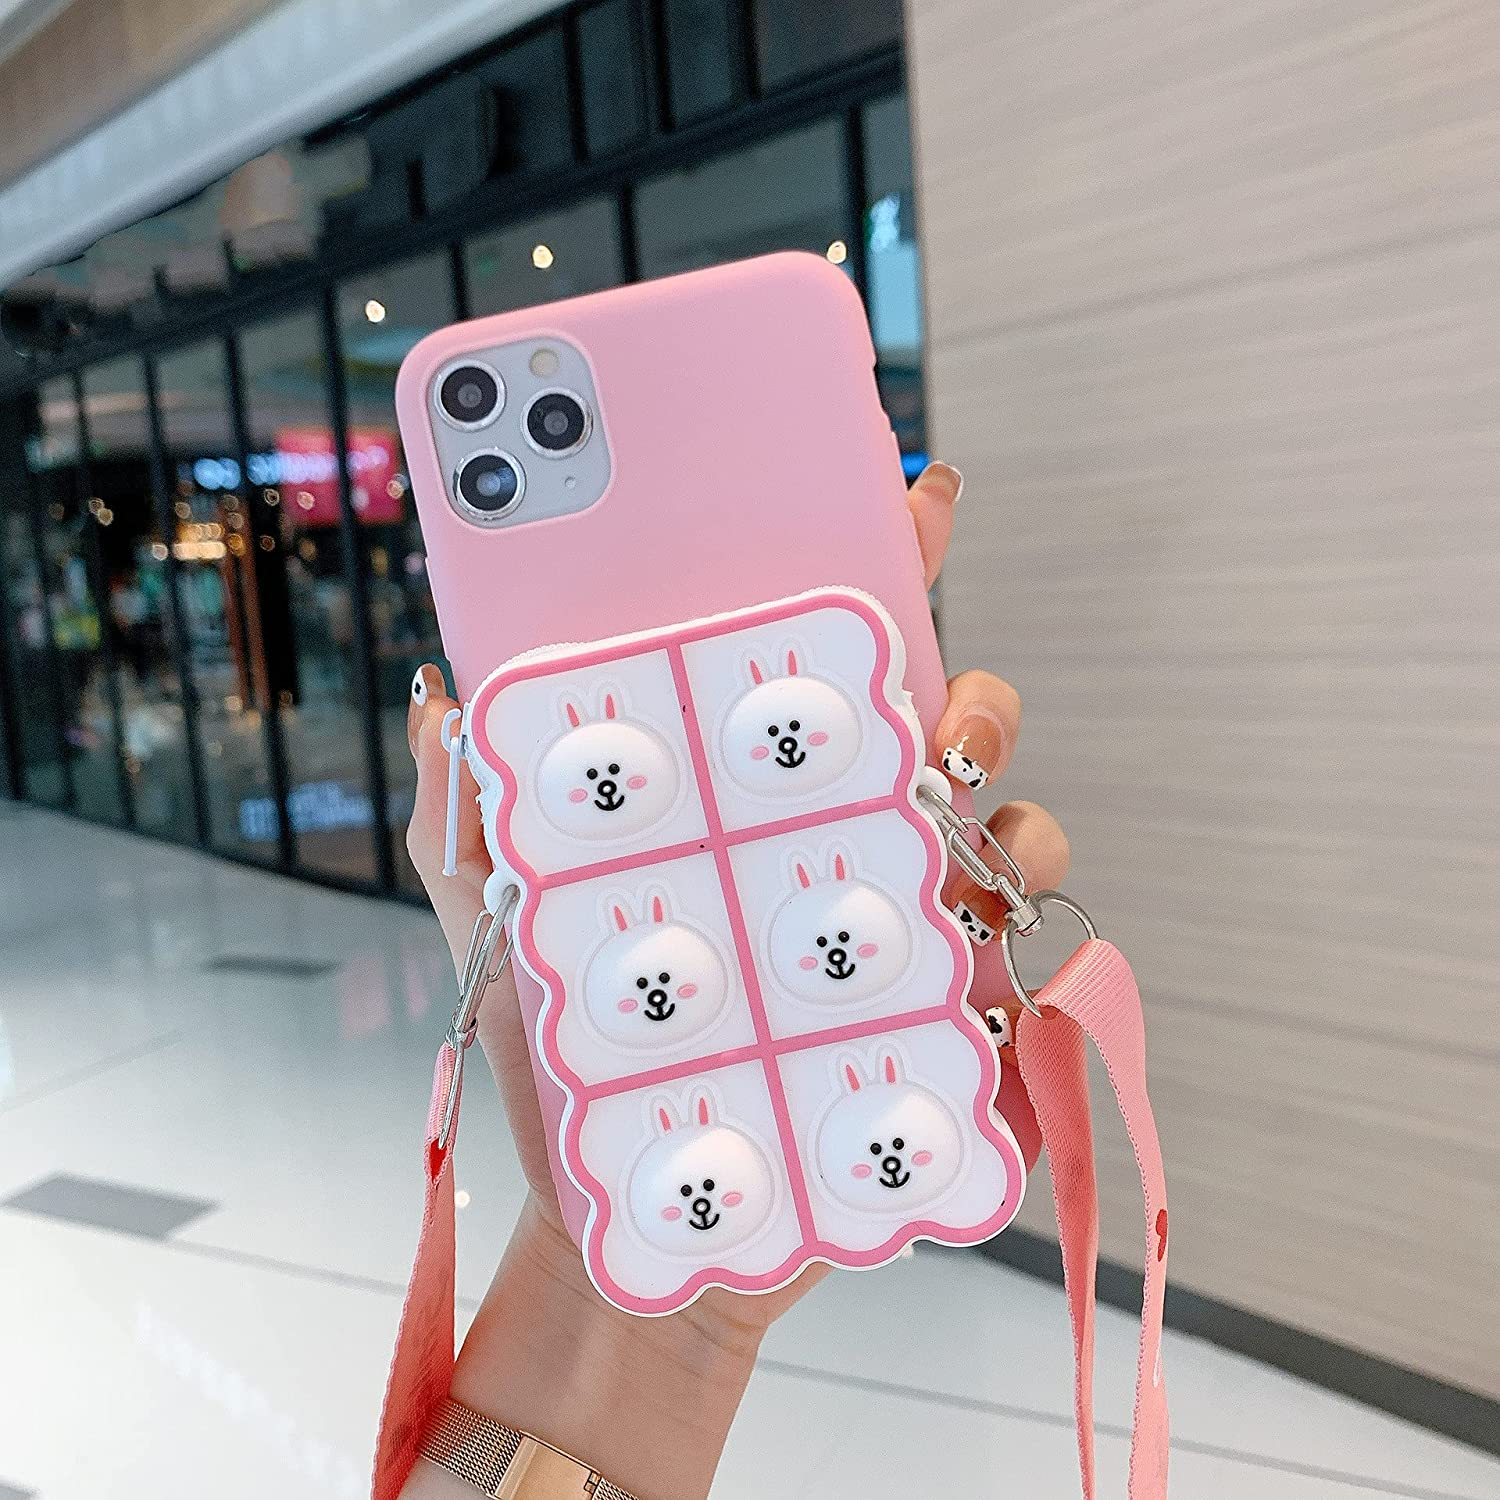 ISYSUII Kickstand Case for Samsung Galaxy S10e Cute Cartoon Animal Character TPU Soft Silicone Protective Case with Card Holder Crossbody Strap Lanyard for Kids Girls Women,White Rabbit